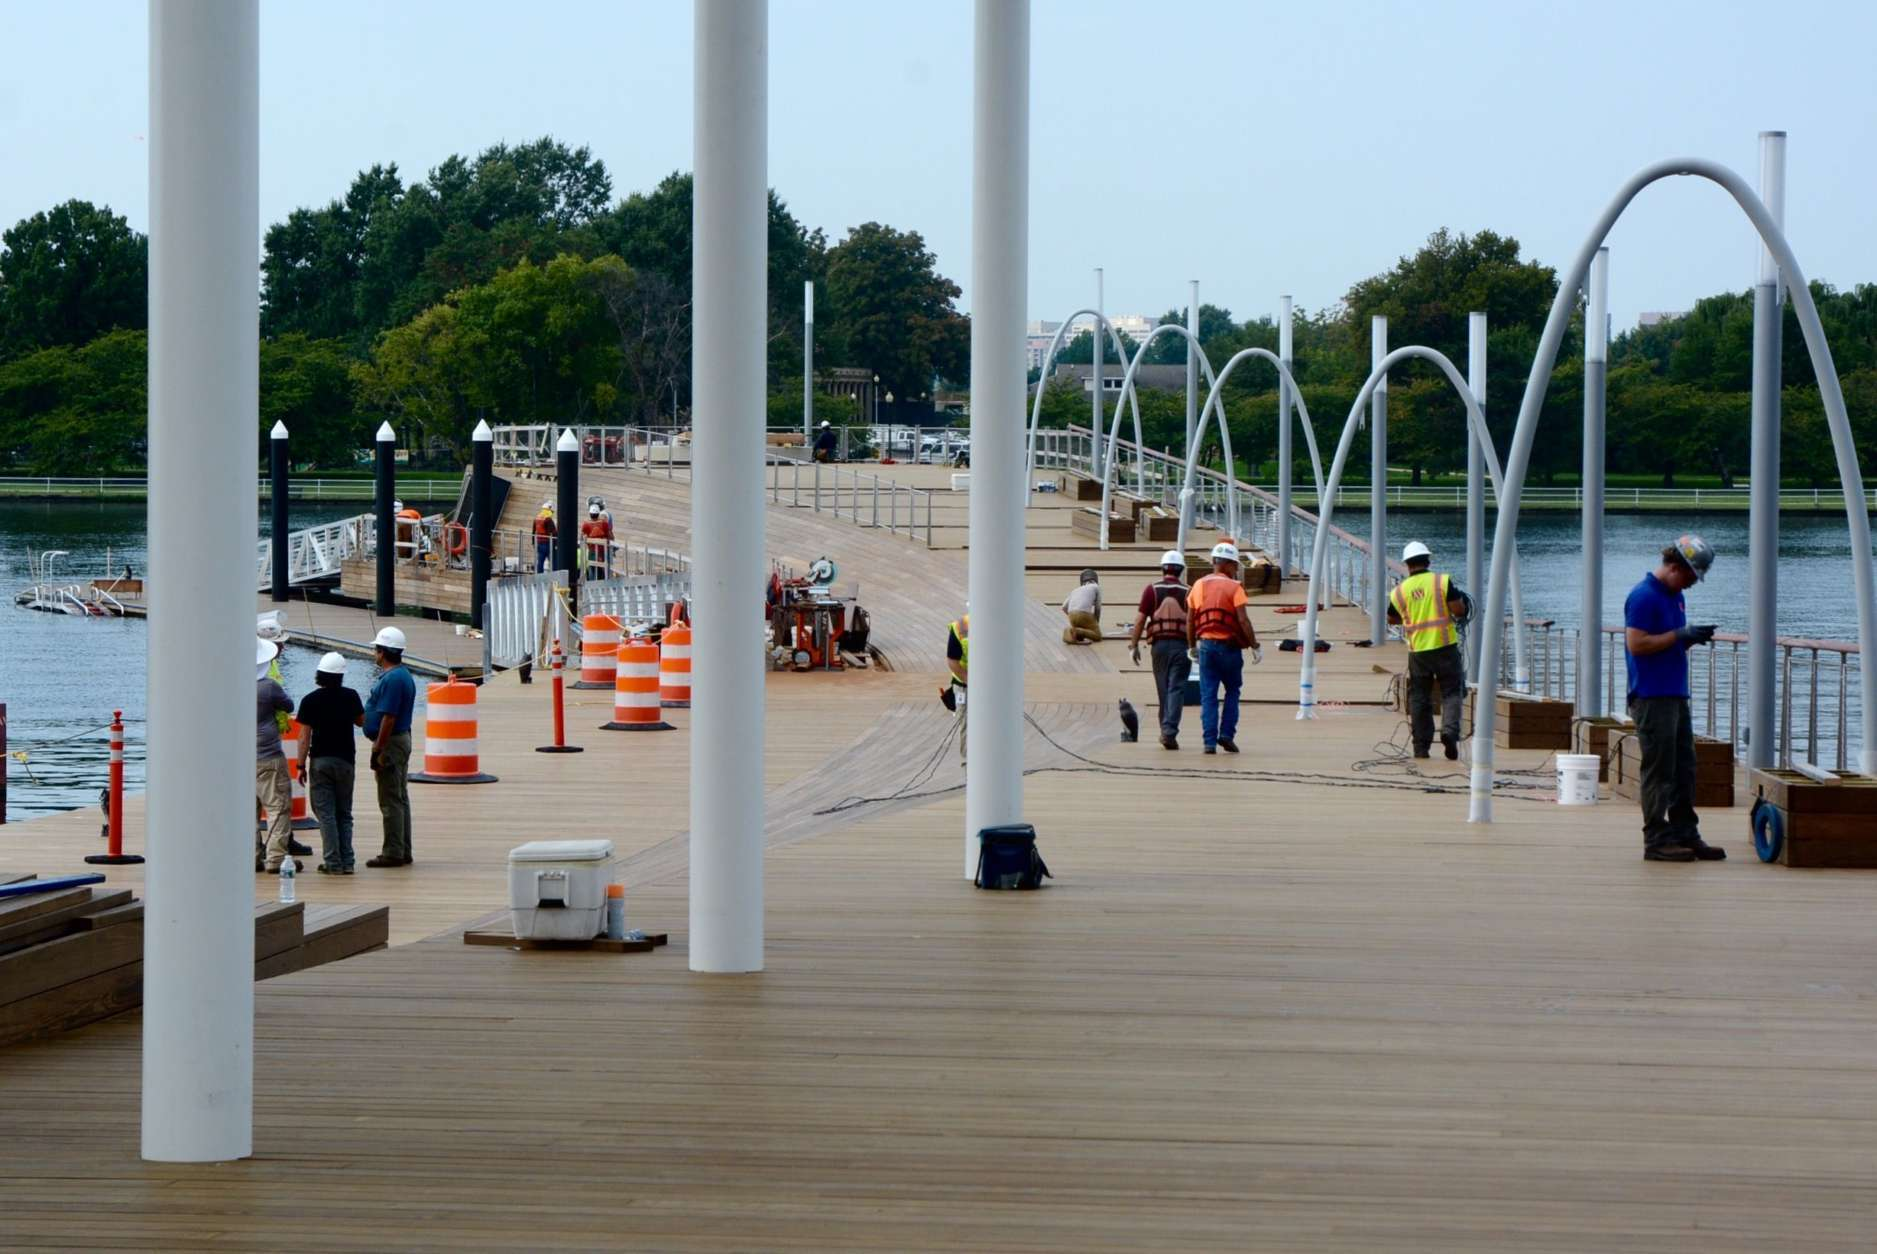 From the Wharf, the Seventh Street Pier extends over 400 feet into Washington Channel. The curved gangway will be adorned with swings, benches and floating wetland features. (WTOP/Dave Dildine)